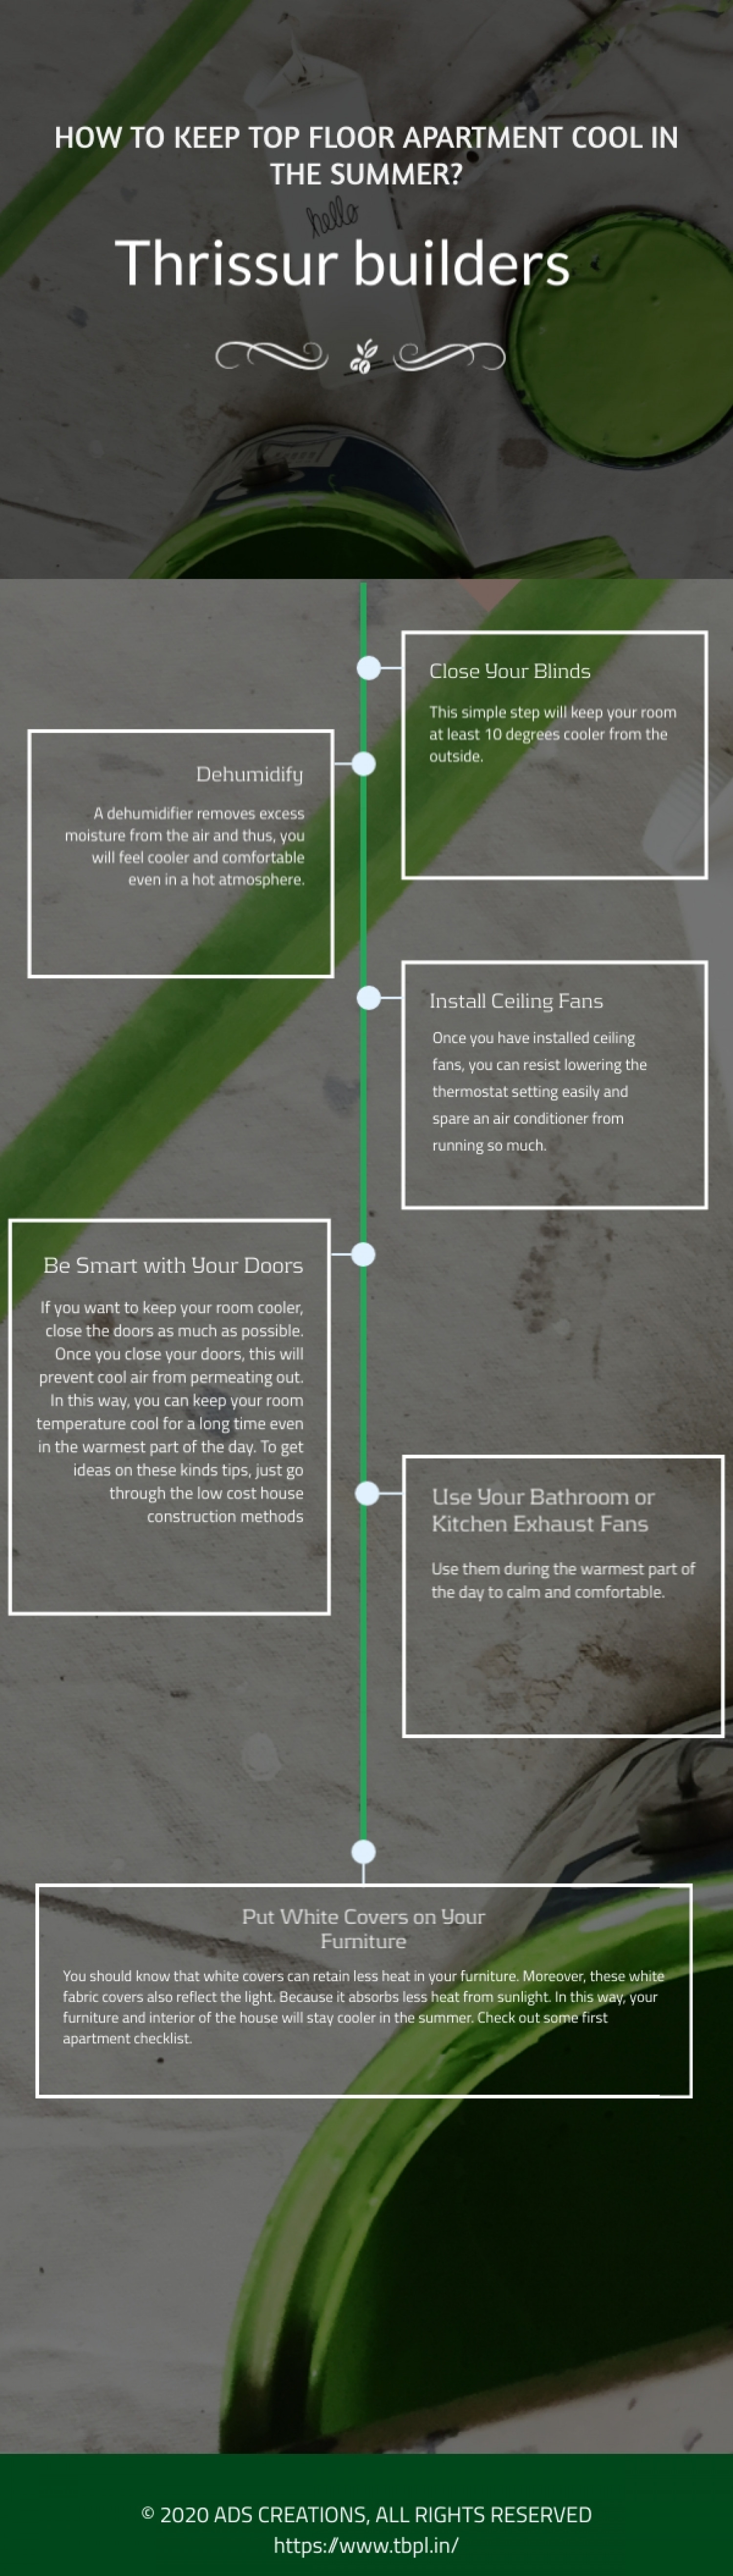 HOW TO KEEP TOP FLOOR APARTMENT COOL IN THE SUMMER? Infographic